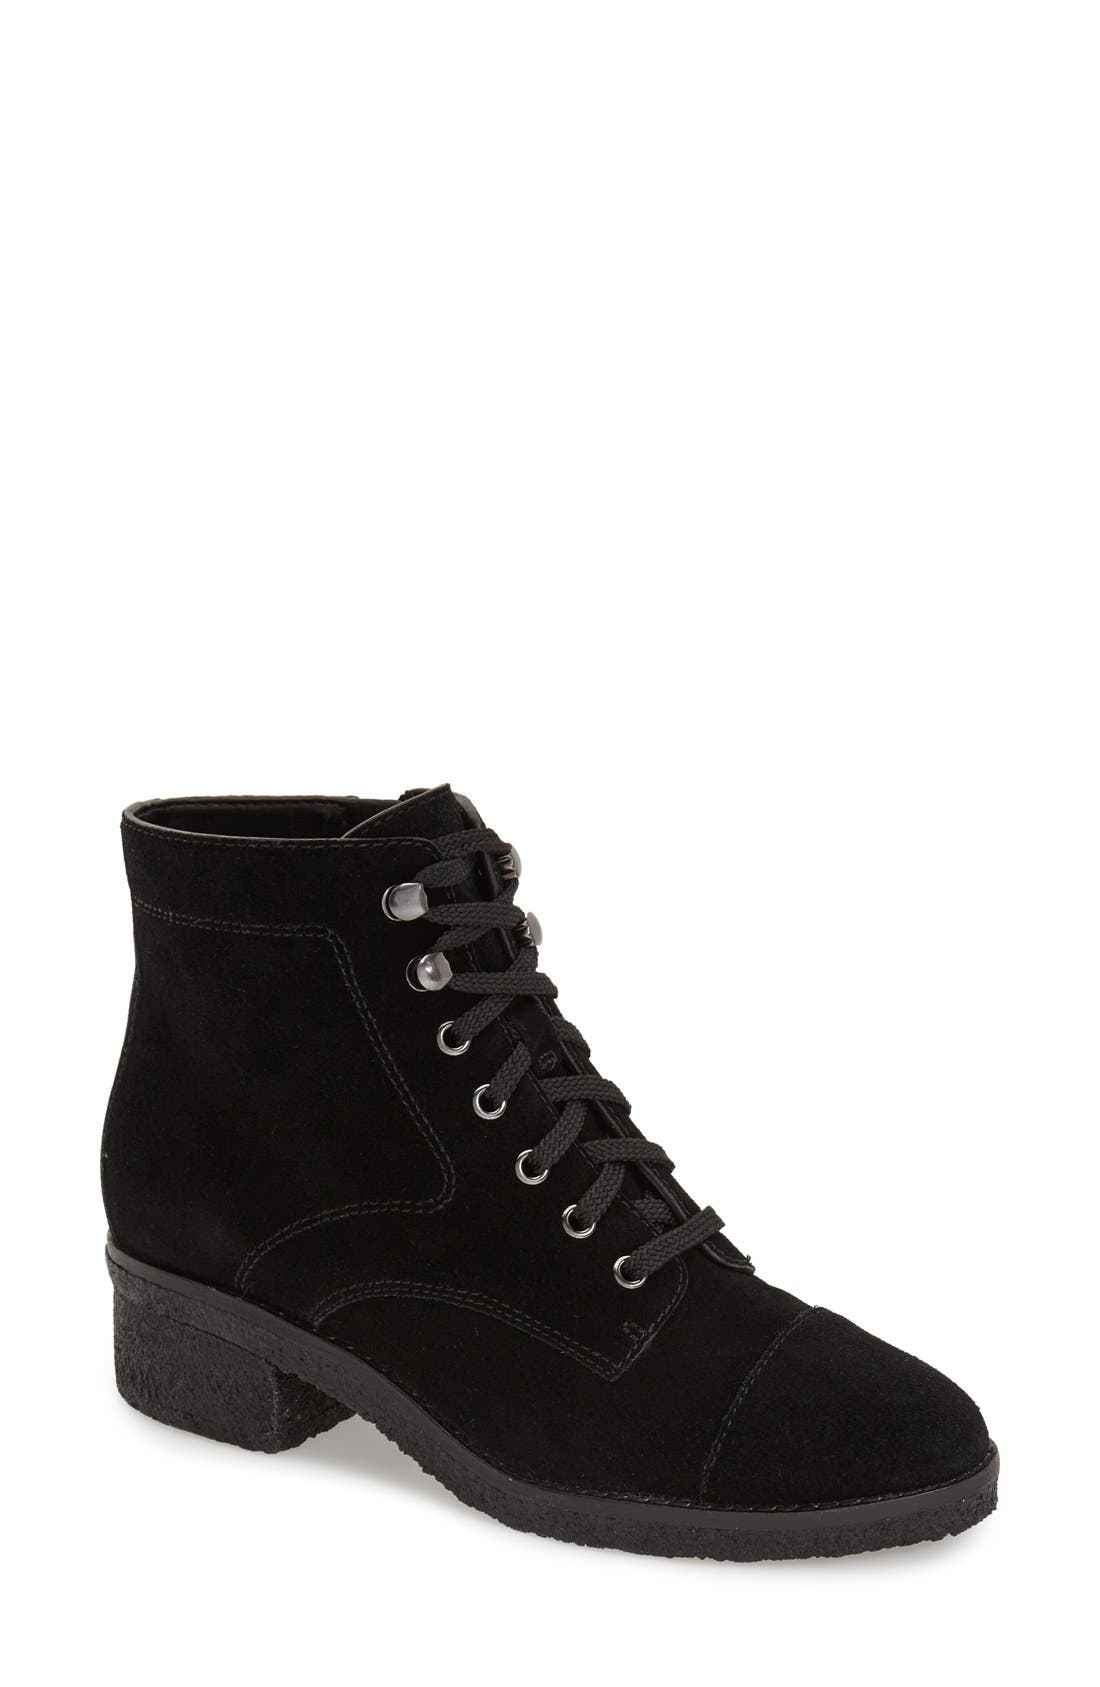 Alternate Image 1 Selected - Marc Fisher LTD 'Donell' Bootie(Women)